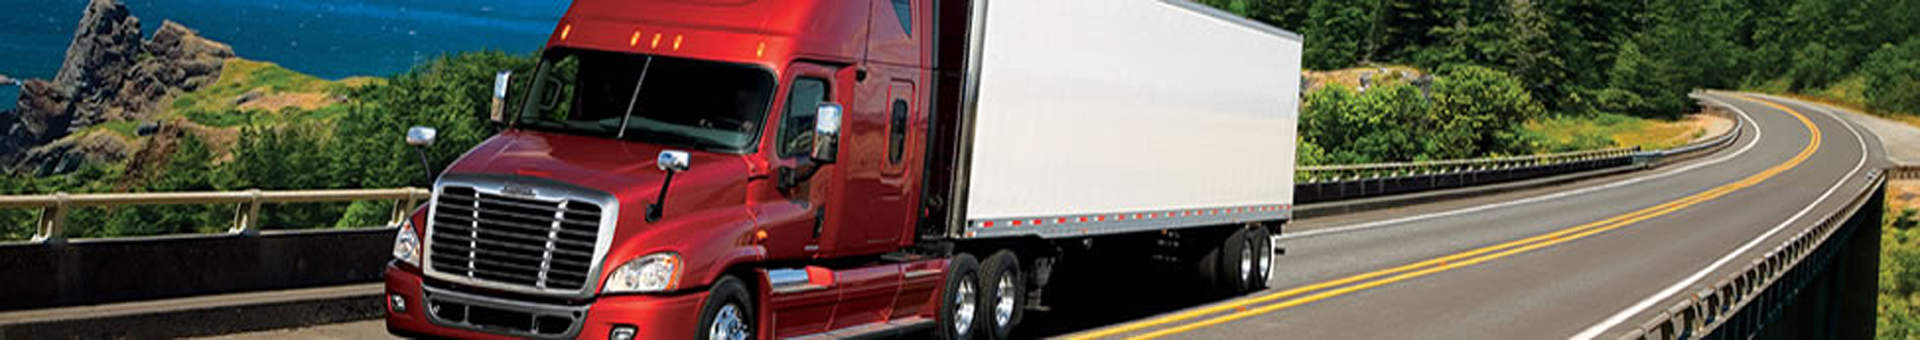 Heavy Duty Truck Parts: Your Total Solution For Truck Drivetrain Repair.